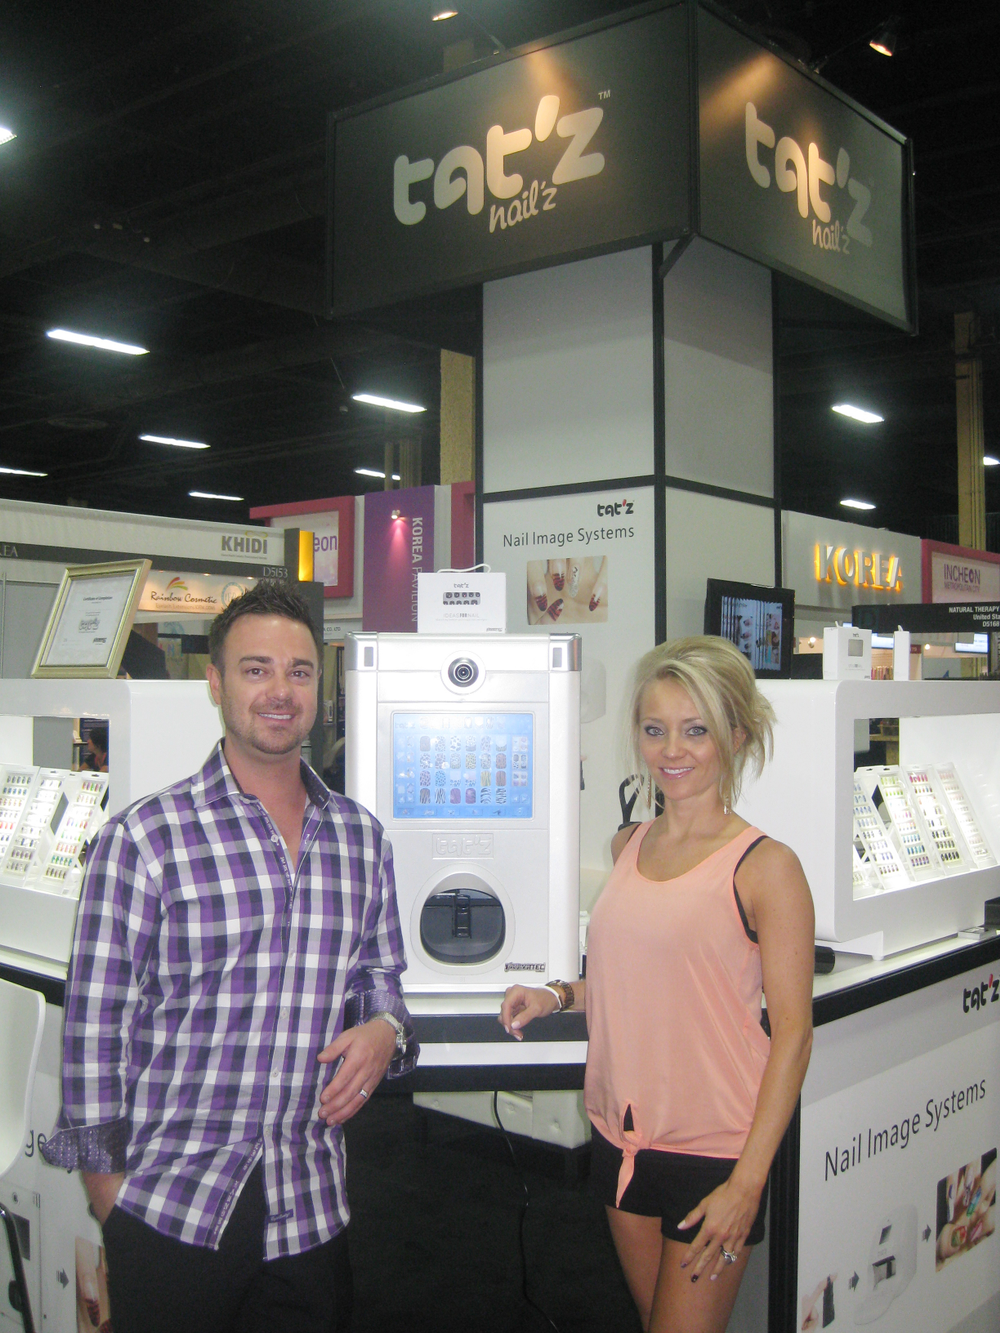 """<p class=""""normal"""">Brett and Jessica Boyer introduce Tat&rsquo;z Nail&rsquo;z nail art printer to salon owners and nail techs.</p>"""